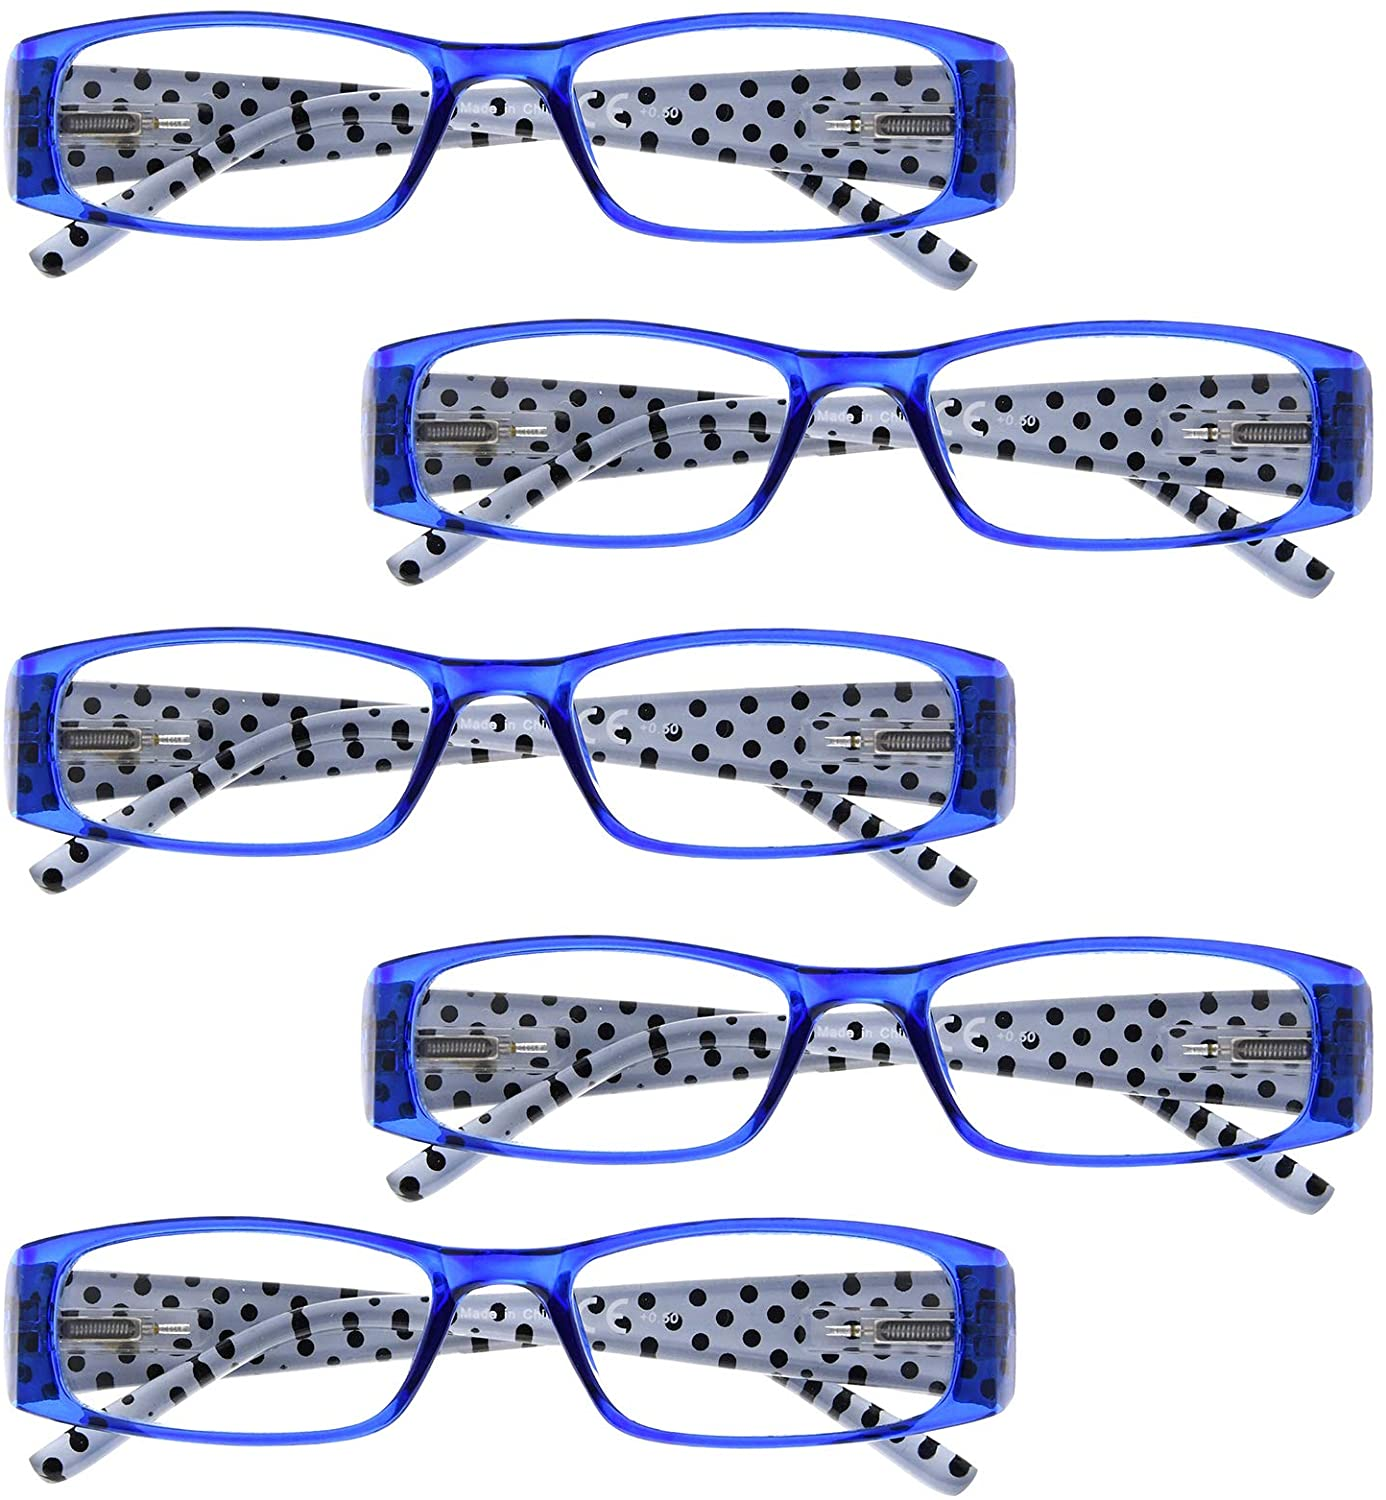 BFOCO 5 Pairs Spots Stylish Patterned Spring Hinges Ladies Reading Eyeglasses Women